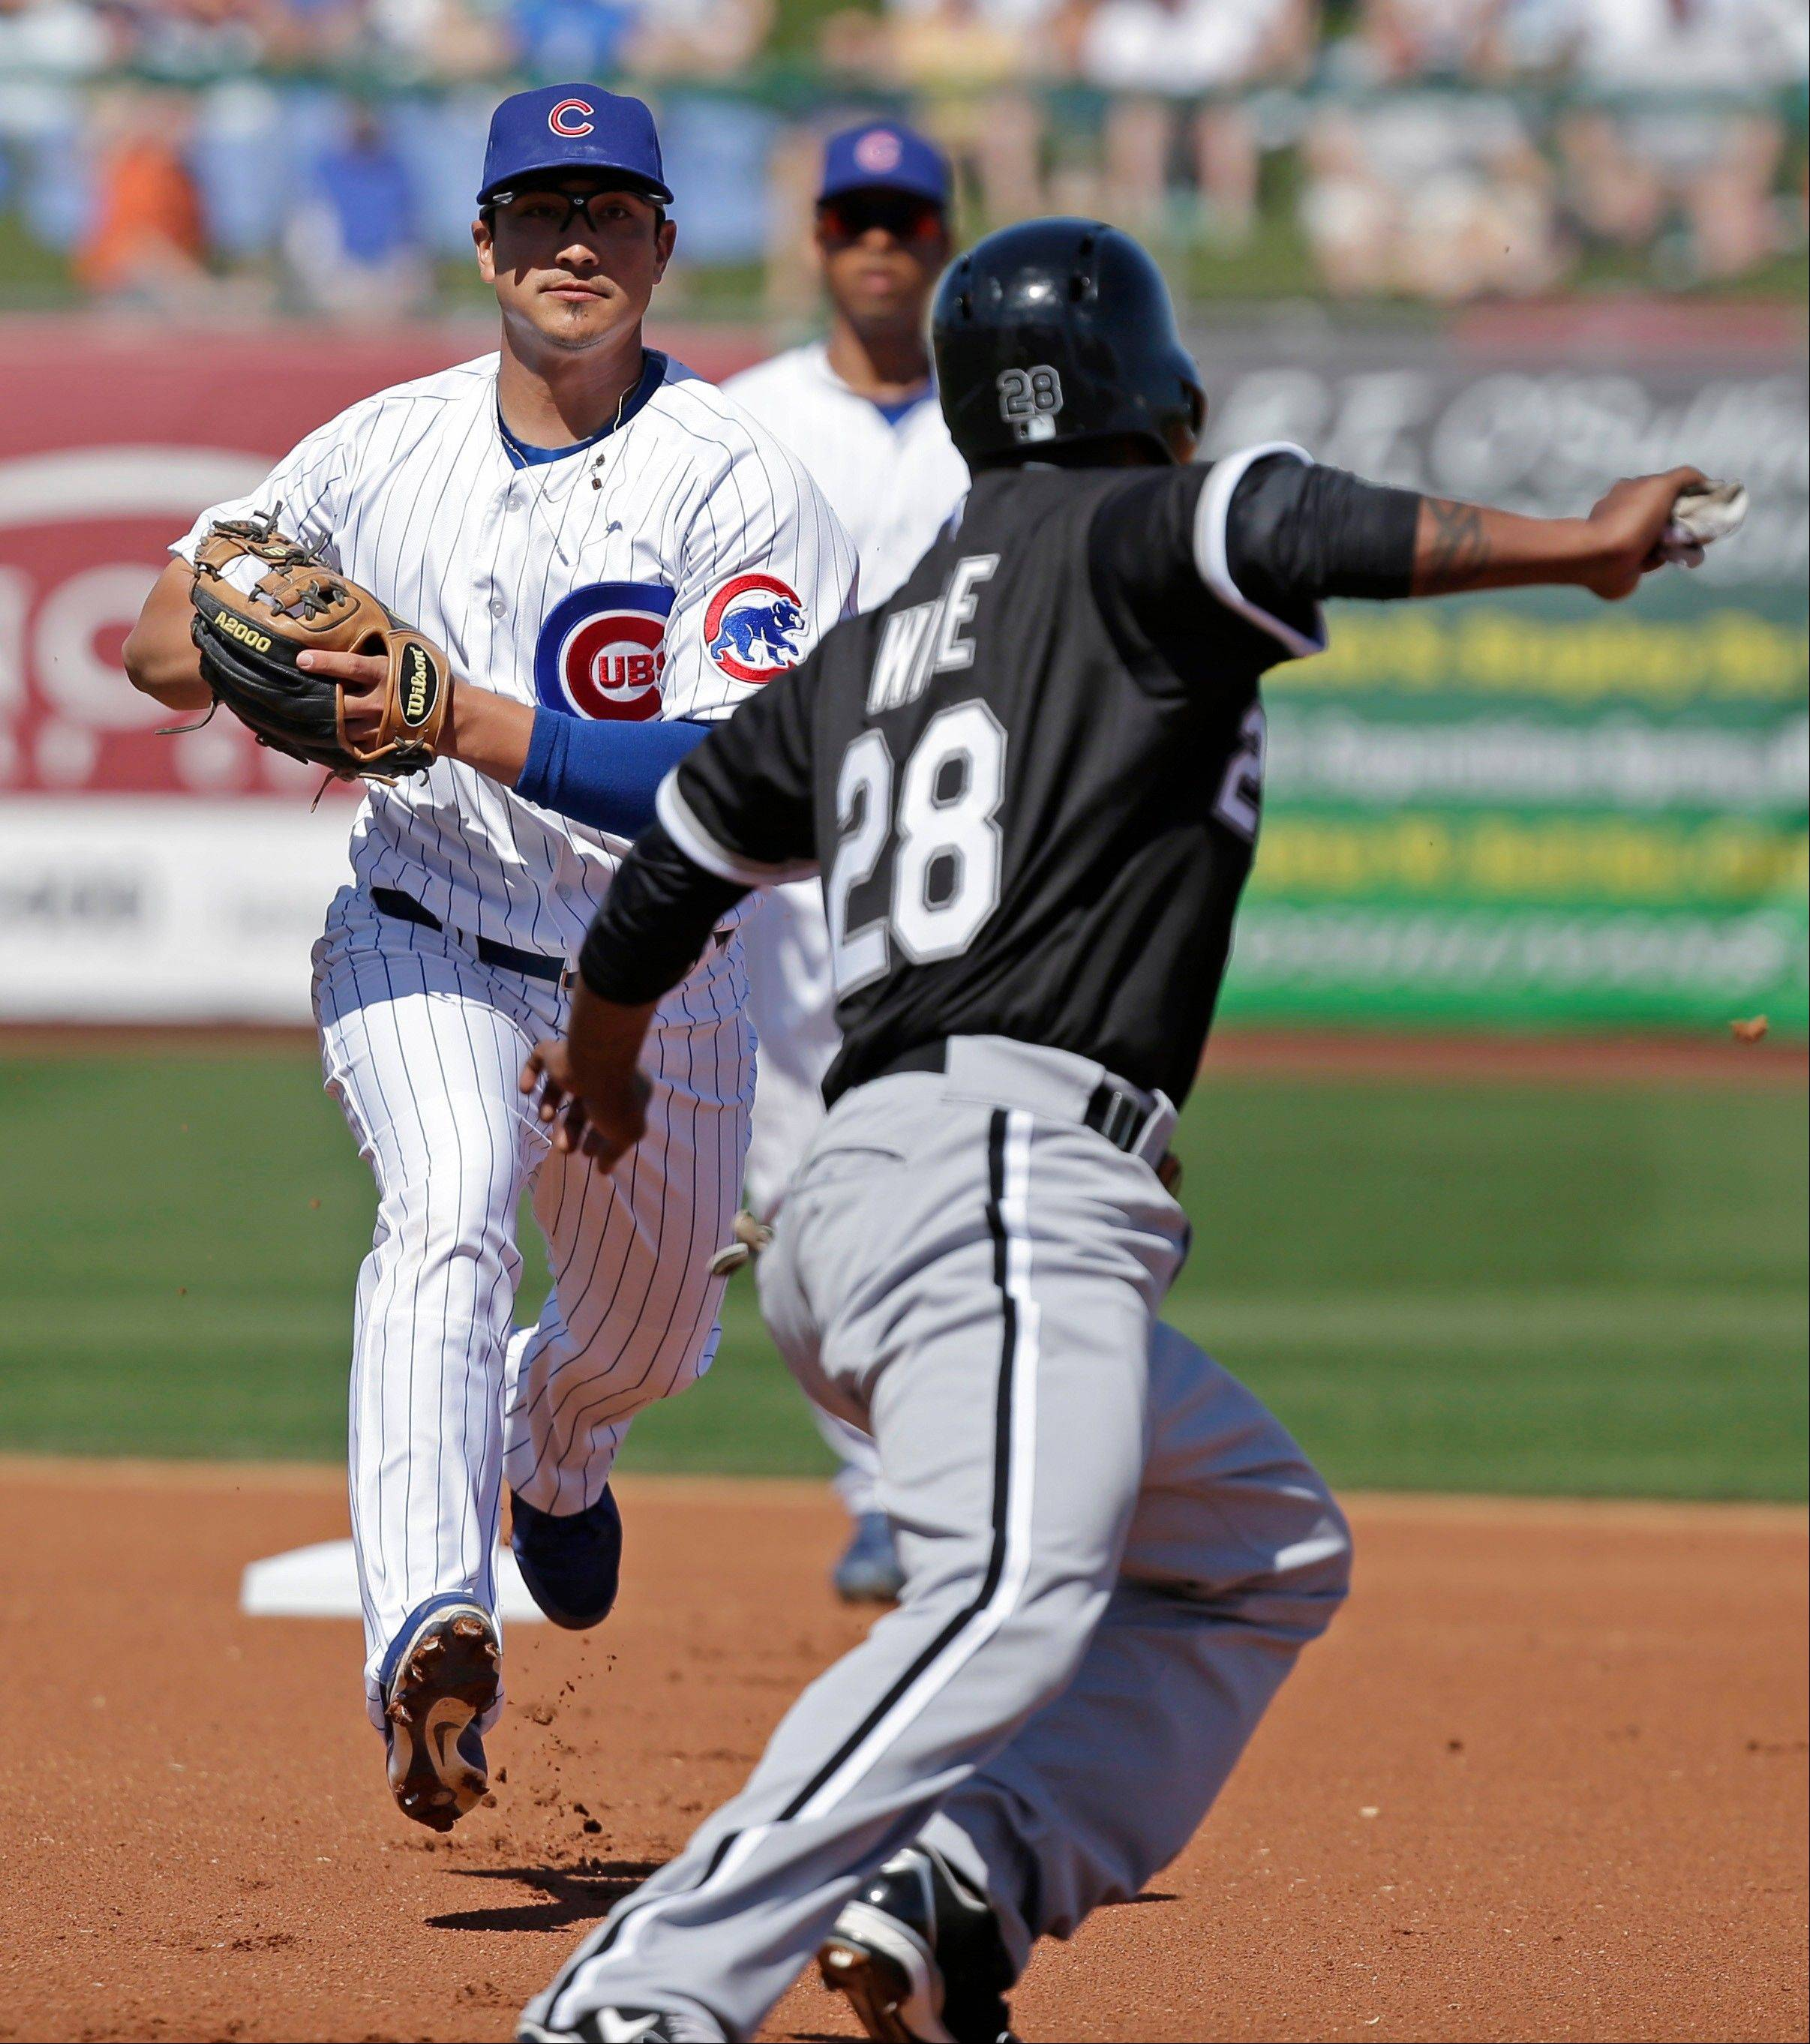 Chicago White Sox's Dewayne Wise (28) is caught is caught off first base as Chicago Cubs' Darwin Barney closes in during the first inning of a spring training baseball game Thursday, March 7, 2013, in Mesa, Ariz. Wise was out.